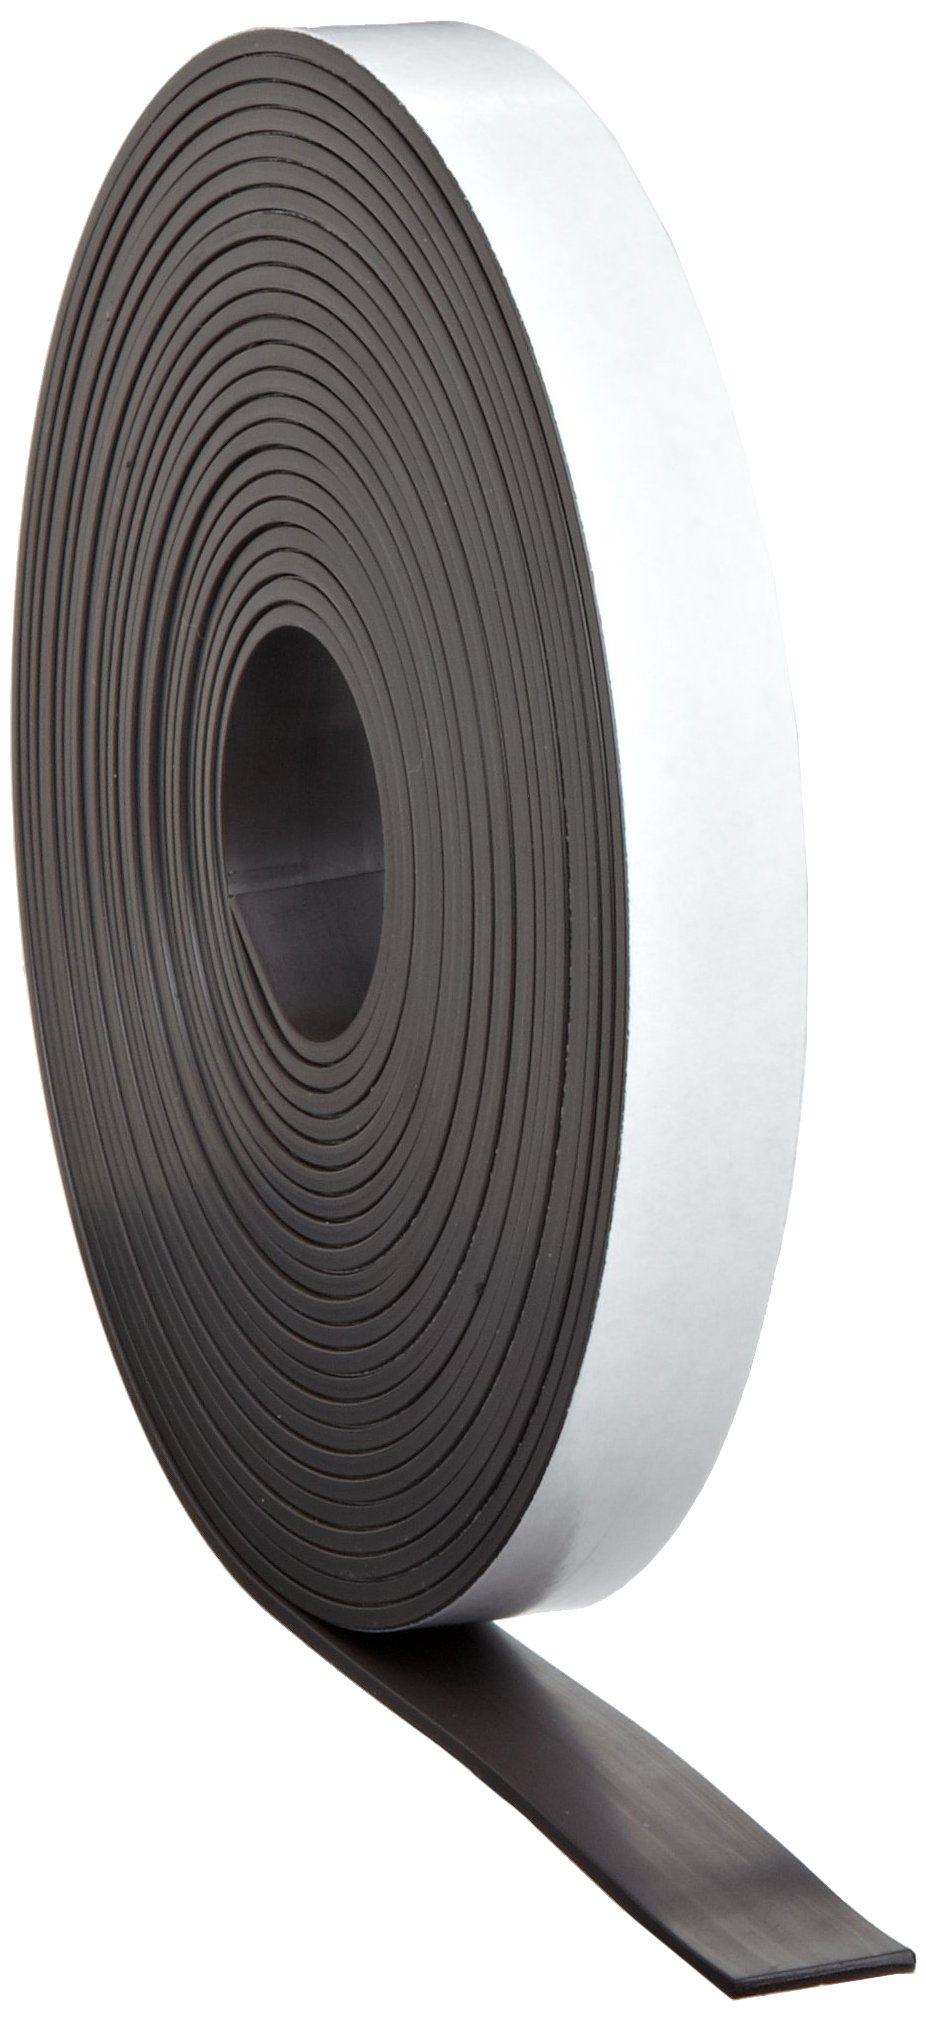 High Energy Flexible Magnet Strip, 1/16'' Thick, 1'' Wide, 100' Length (1 Roll)